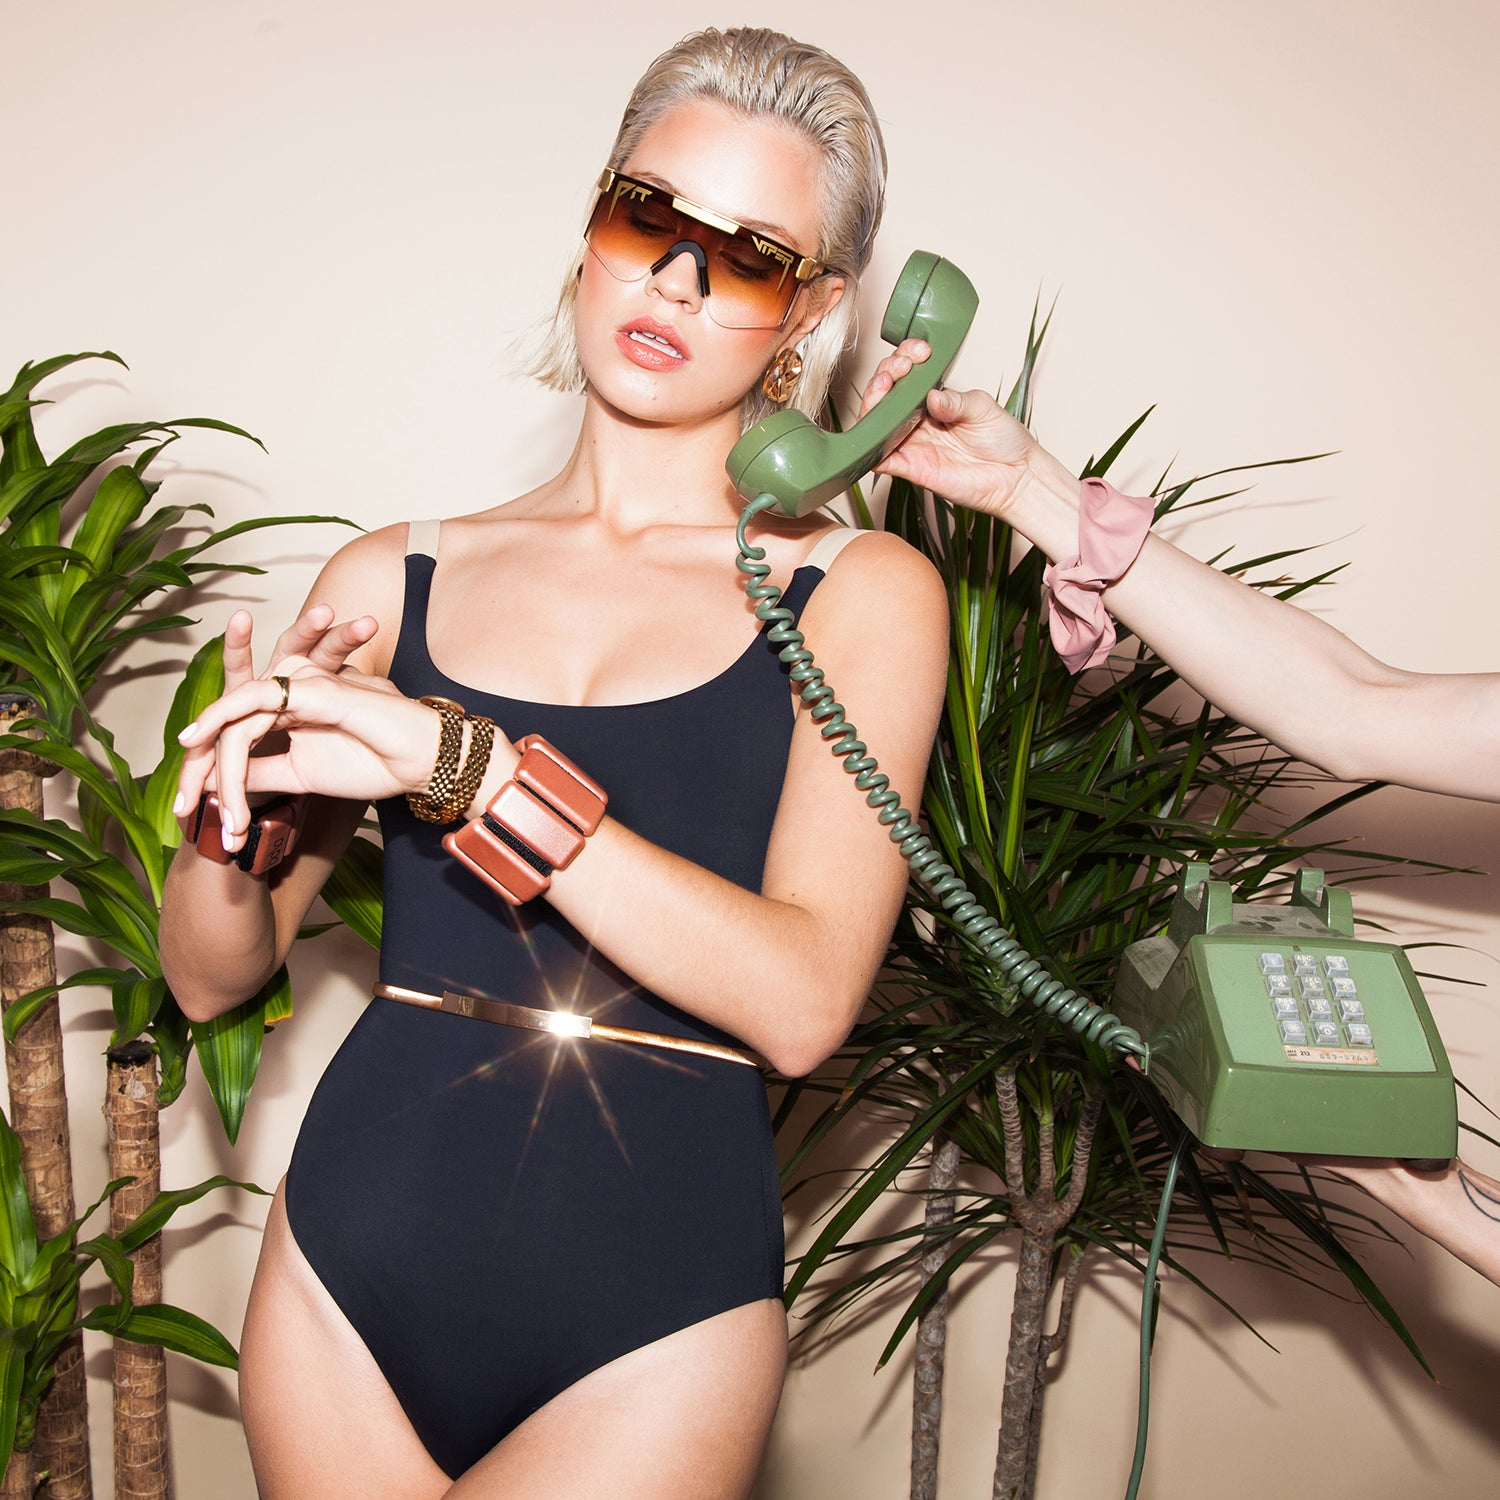 A model with sunglasses, in a workout bodysuit showcasing Bala Bangles while being on the phone.